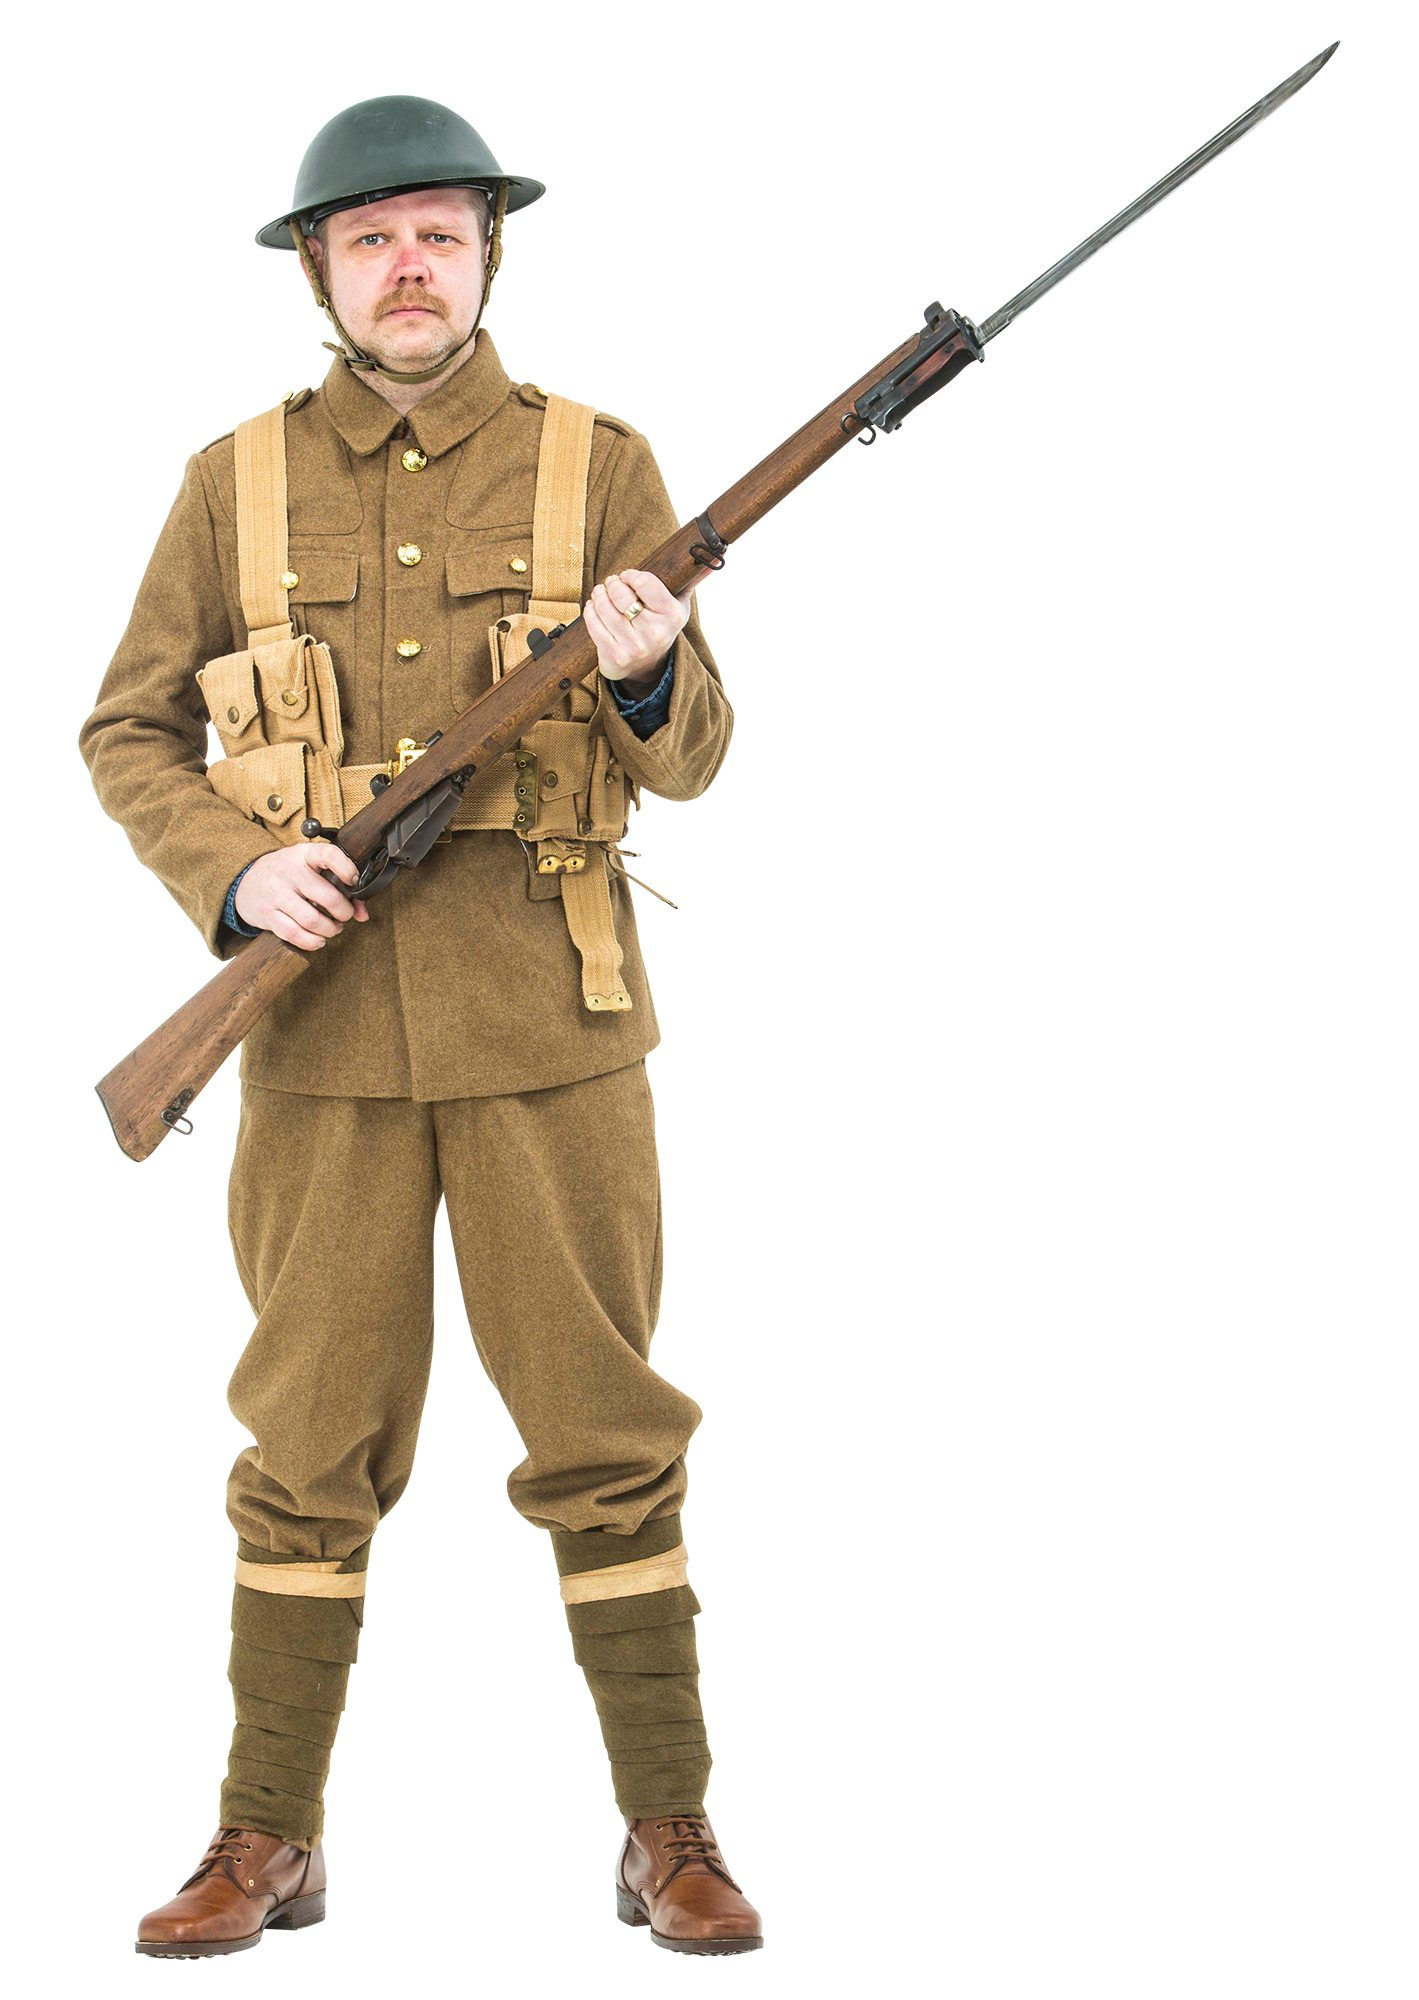 Ww1 British Army Uniform 1916 The Somme Reproduction Ww1 And Ww2